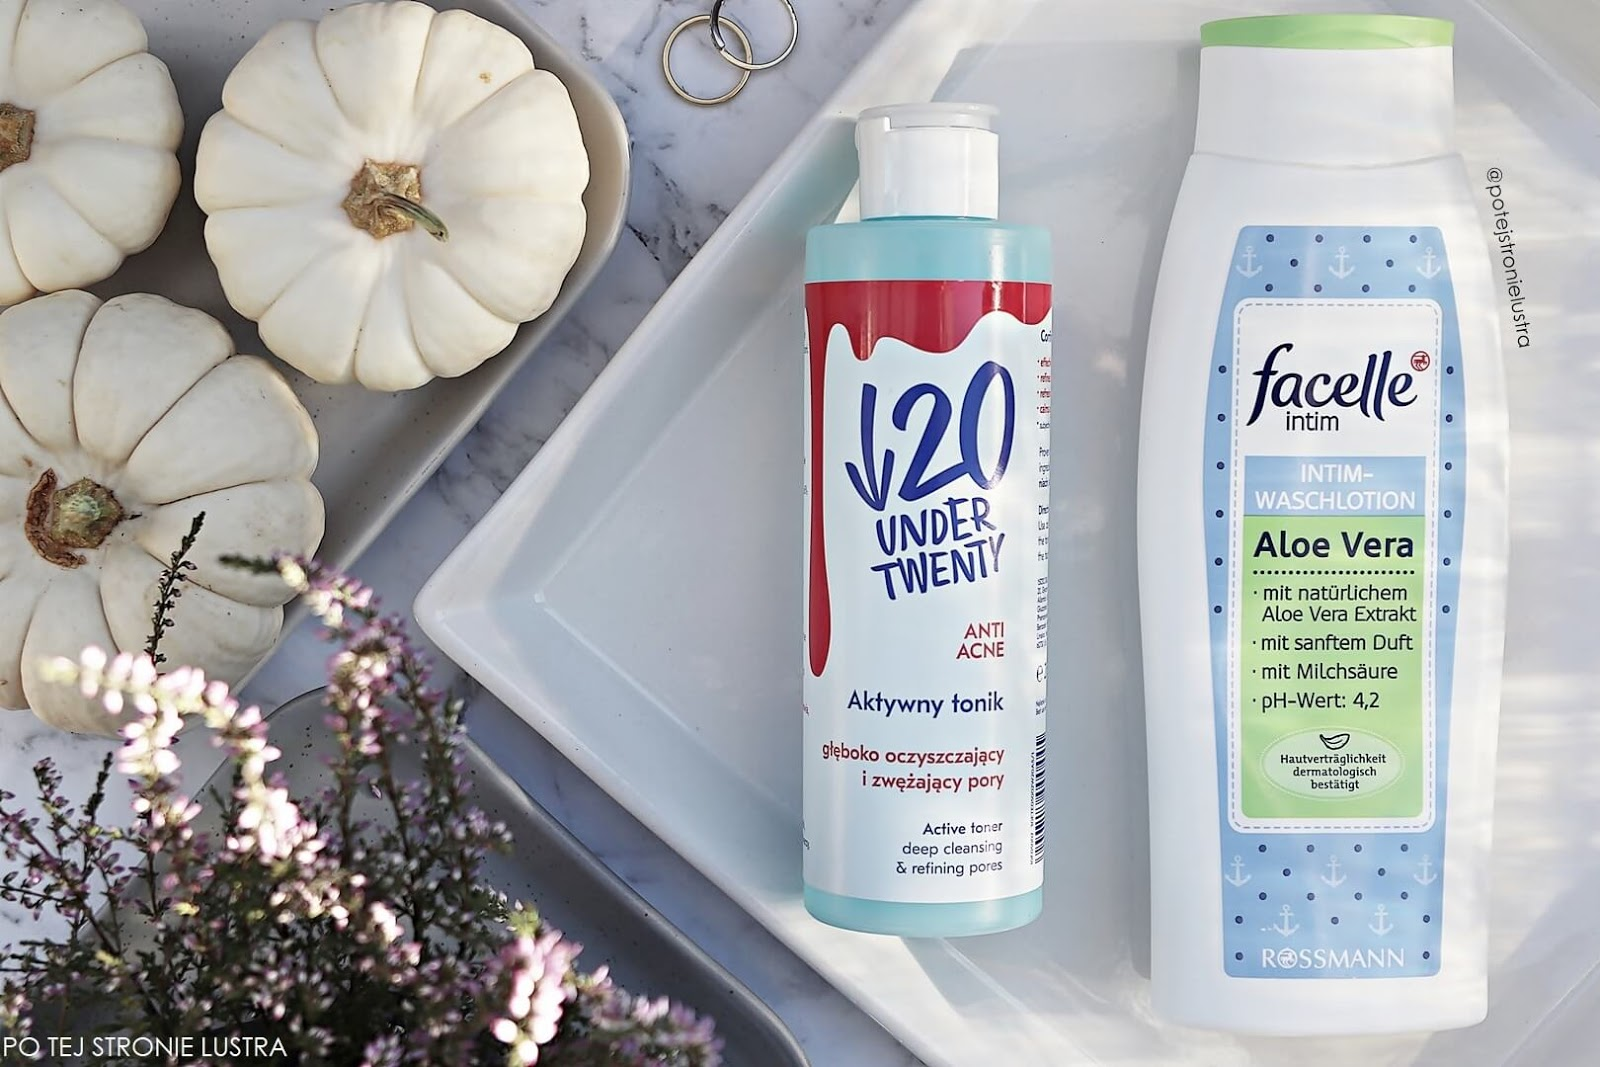 tonik under twenty anti acne, facelle aloe vera płyn do higieny intymnej